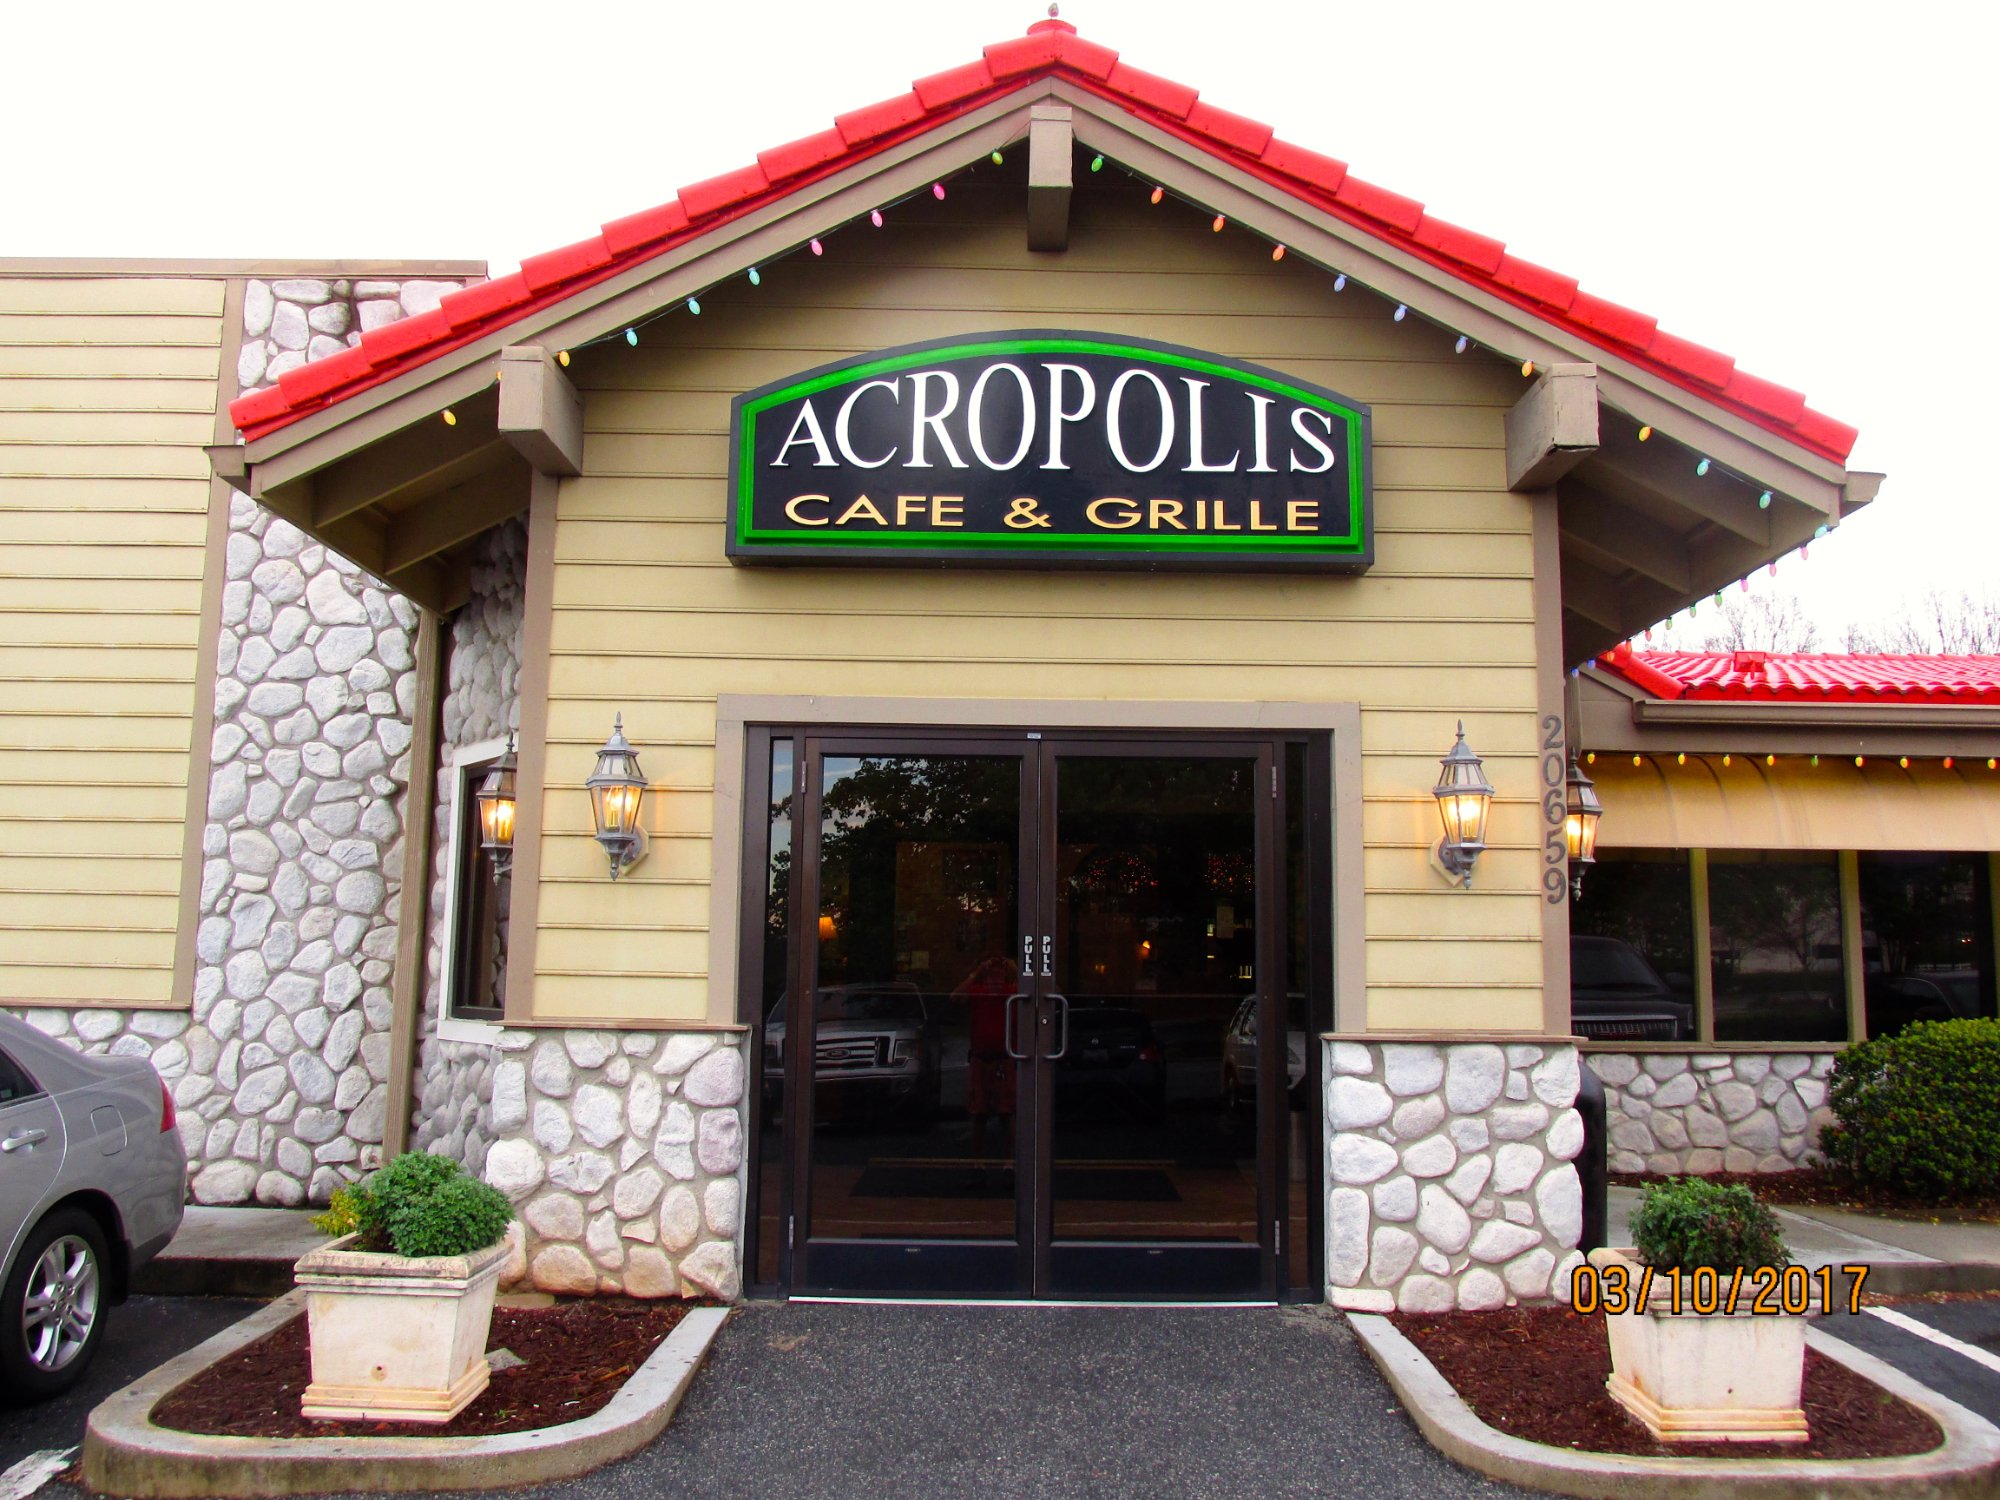 Acropolis cafe grill cornelius menu prices for Acropolis cuisine menu